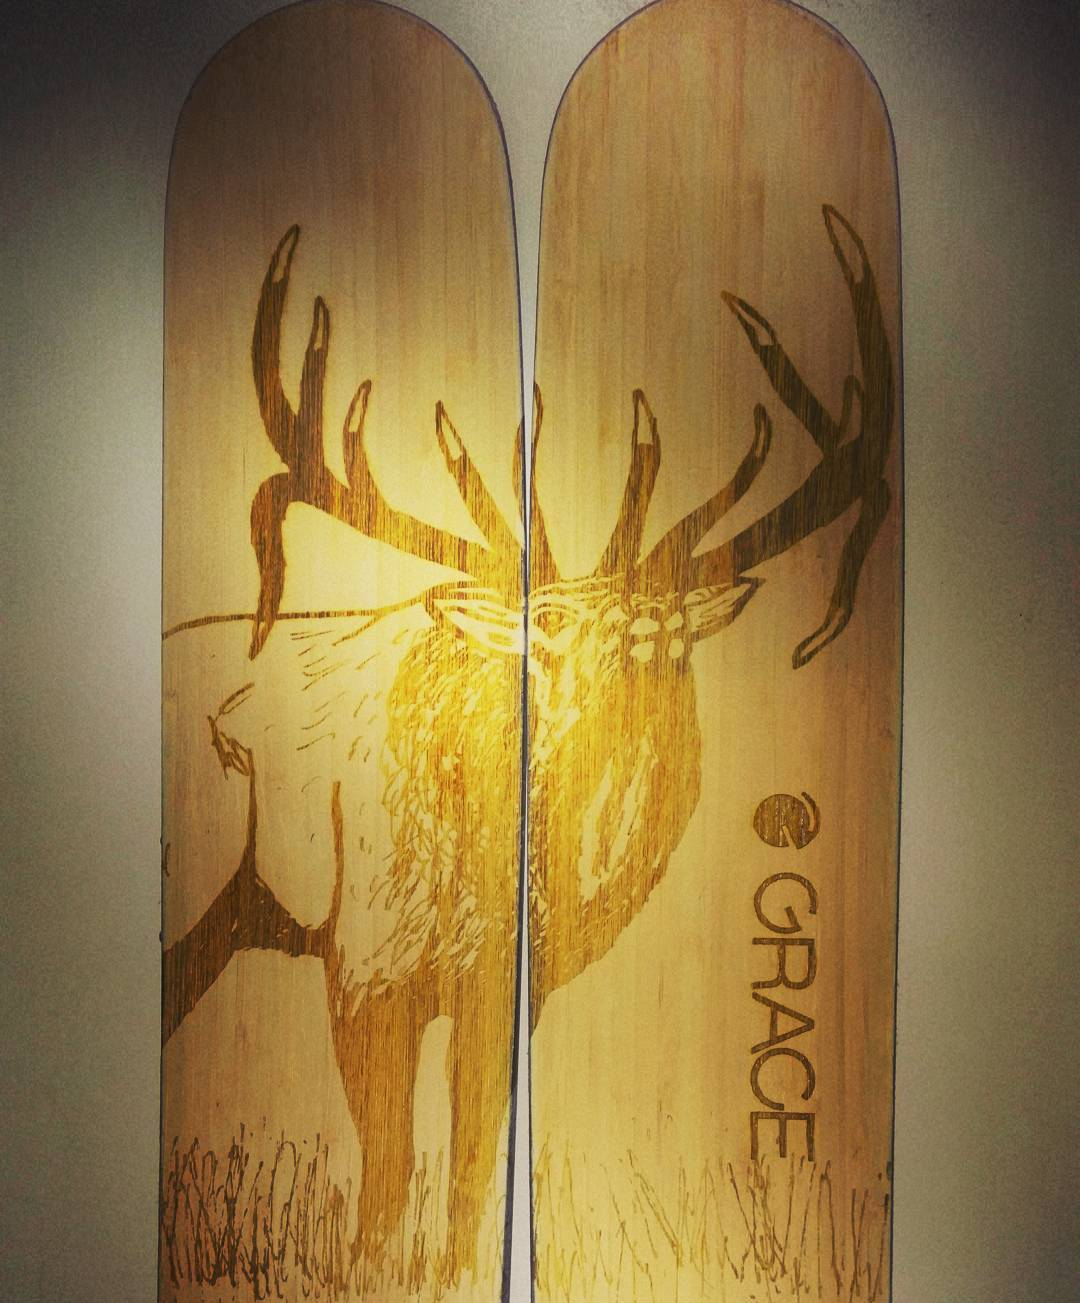 #instantcustom graphics are looking sweet! These actually blank skis we used our patent pending #afterburn inventory process to add a graphic to after they had been skied a few days. One of our artists in this case @huntfishski can draw something...